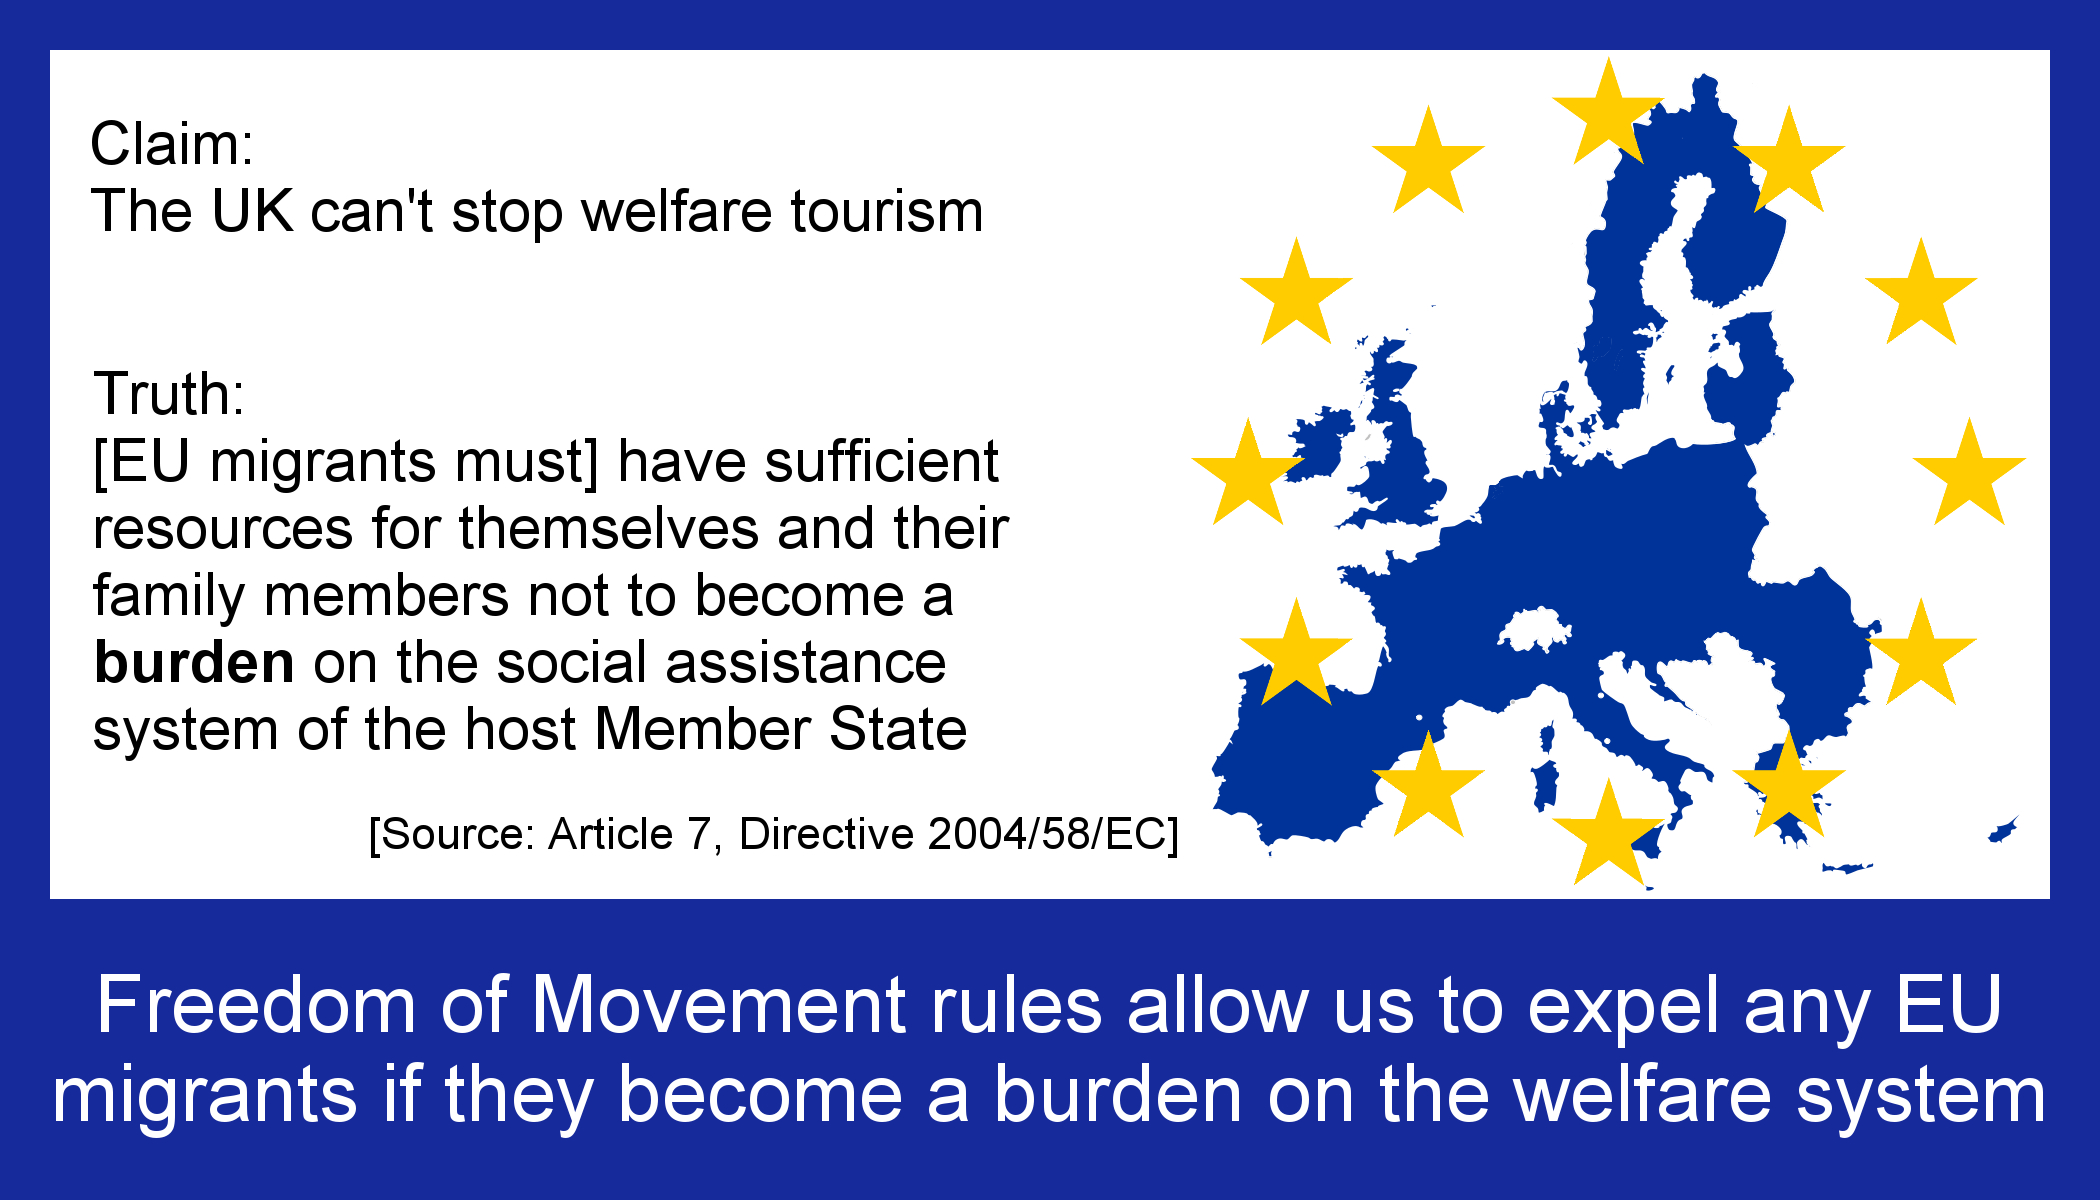 Britain has all the powers it needs to prevent welfare tourism